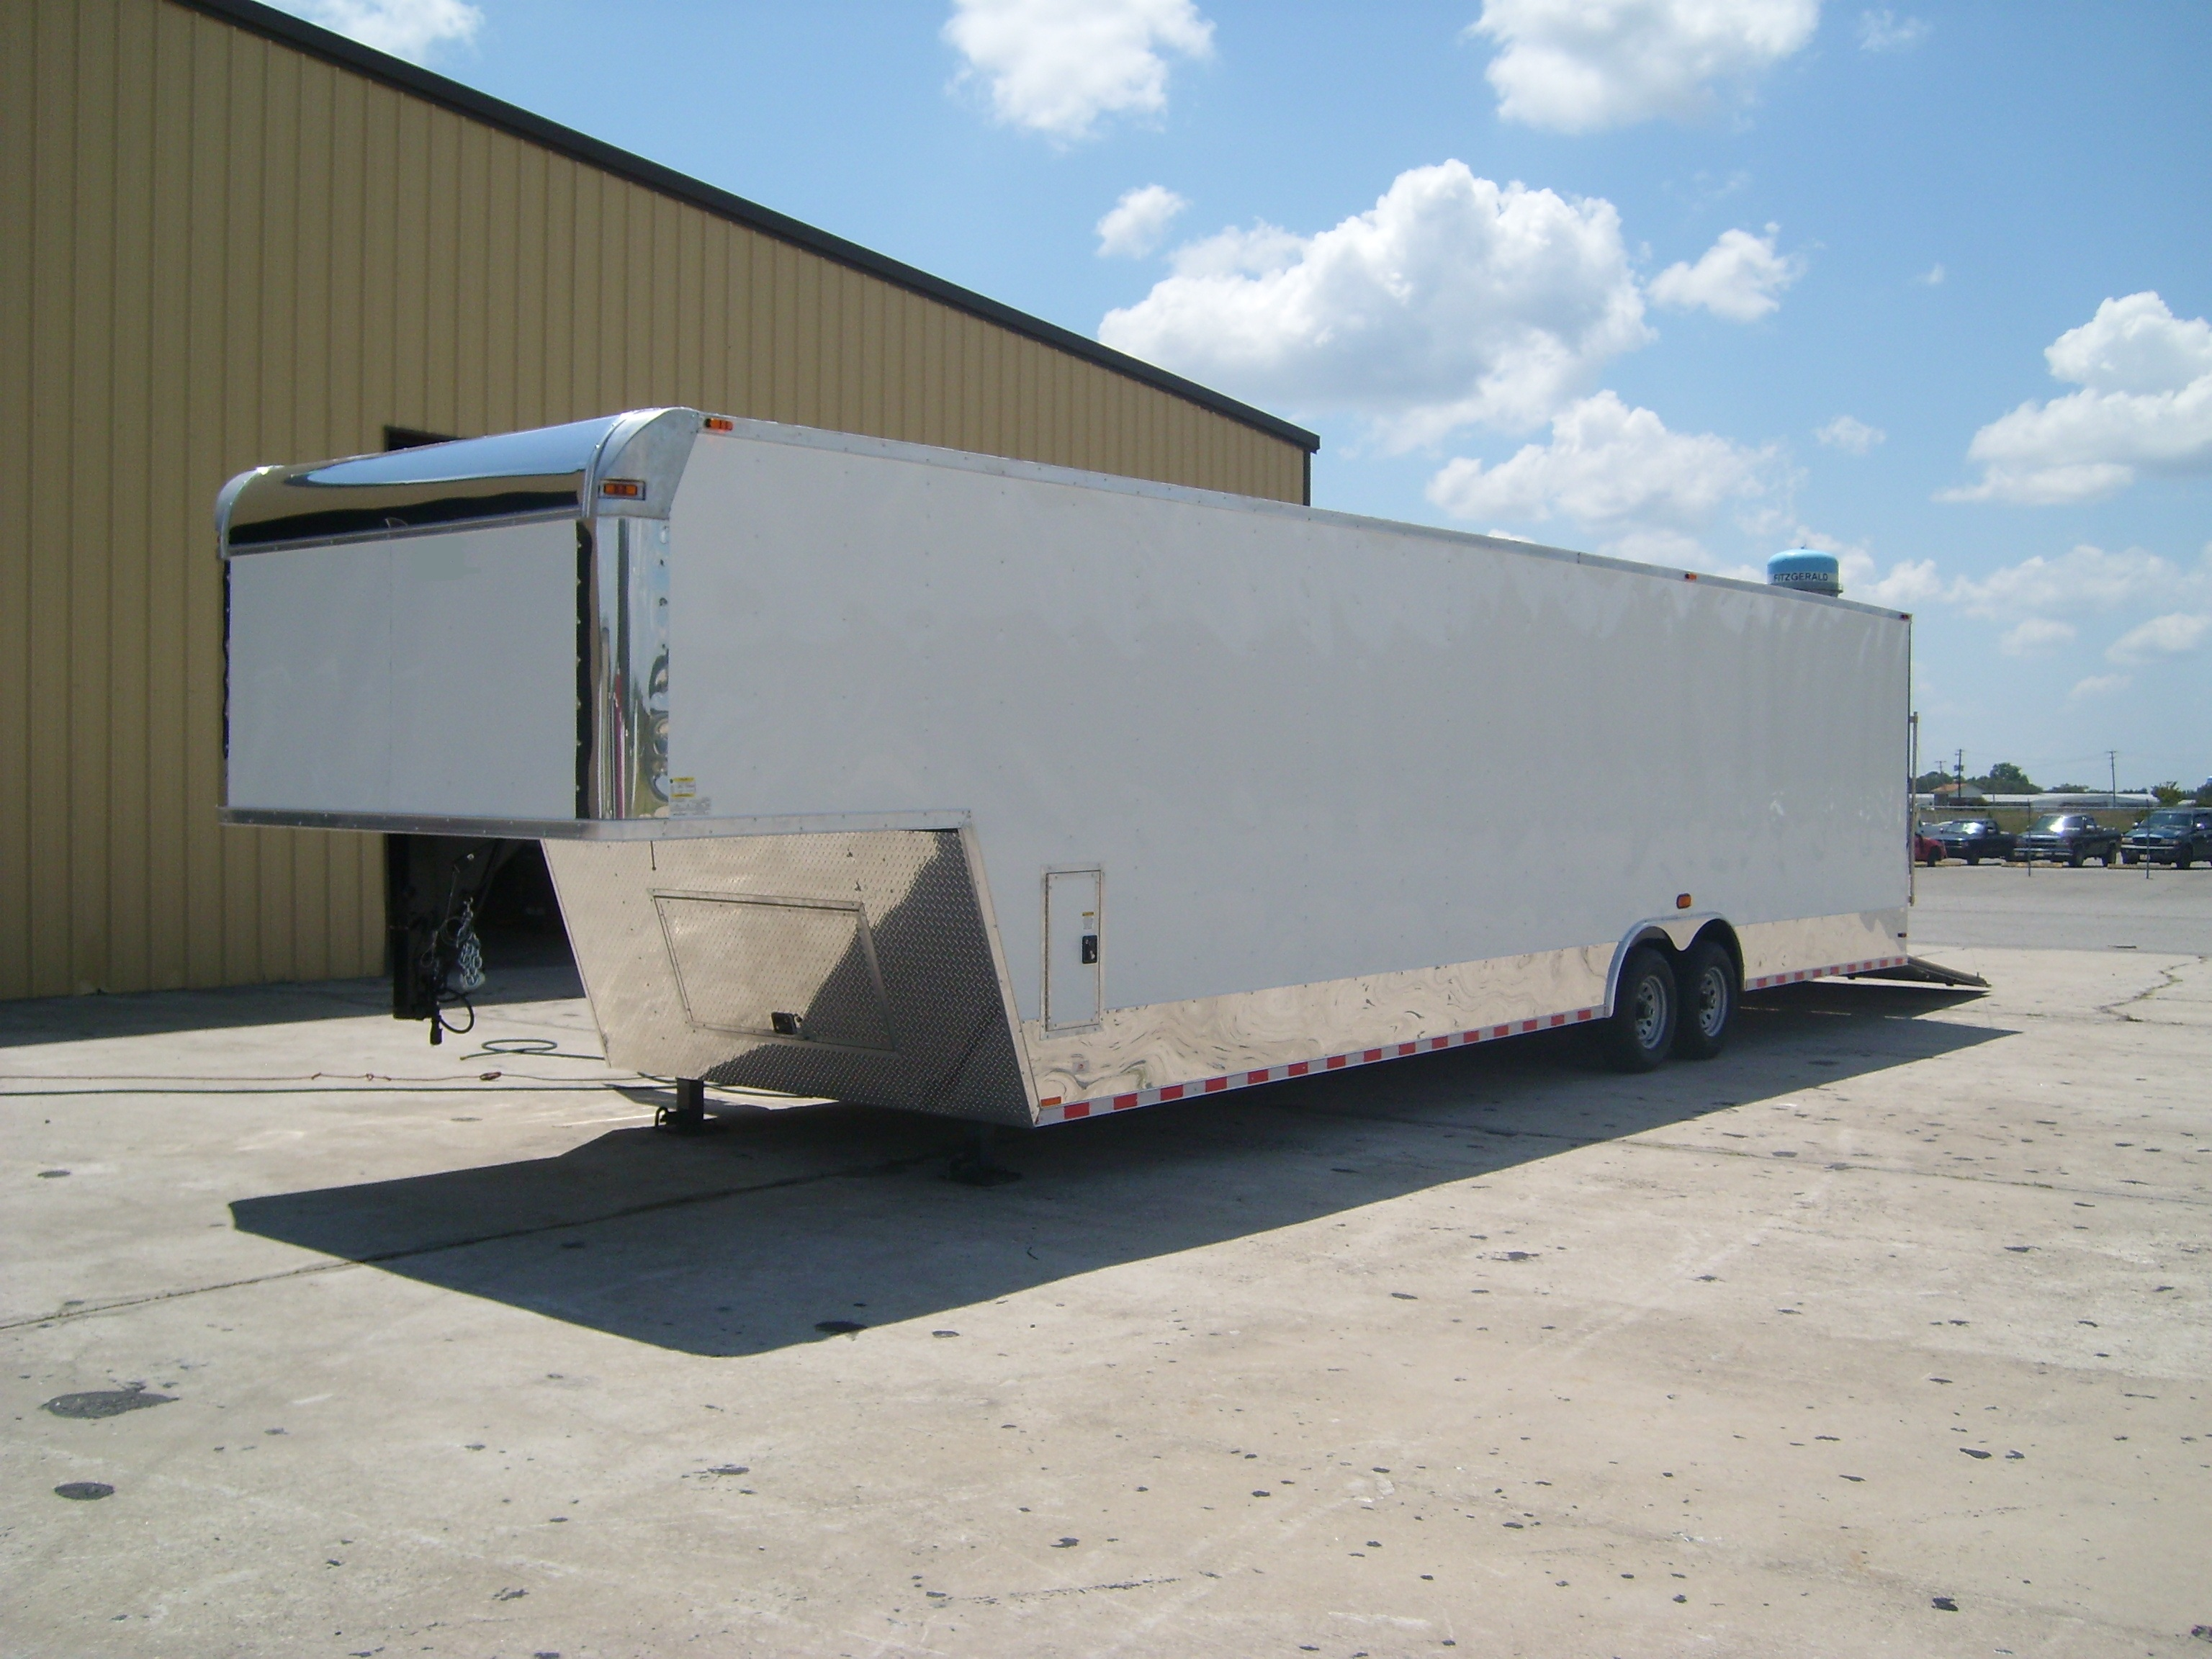 Car Haulers Enclosed Trailers For Lessenclosed Trailers For Less